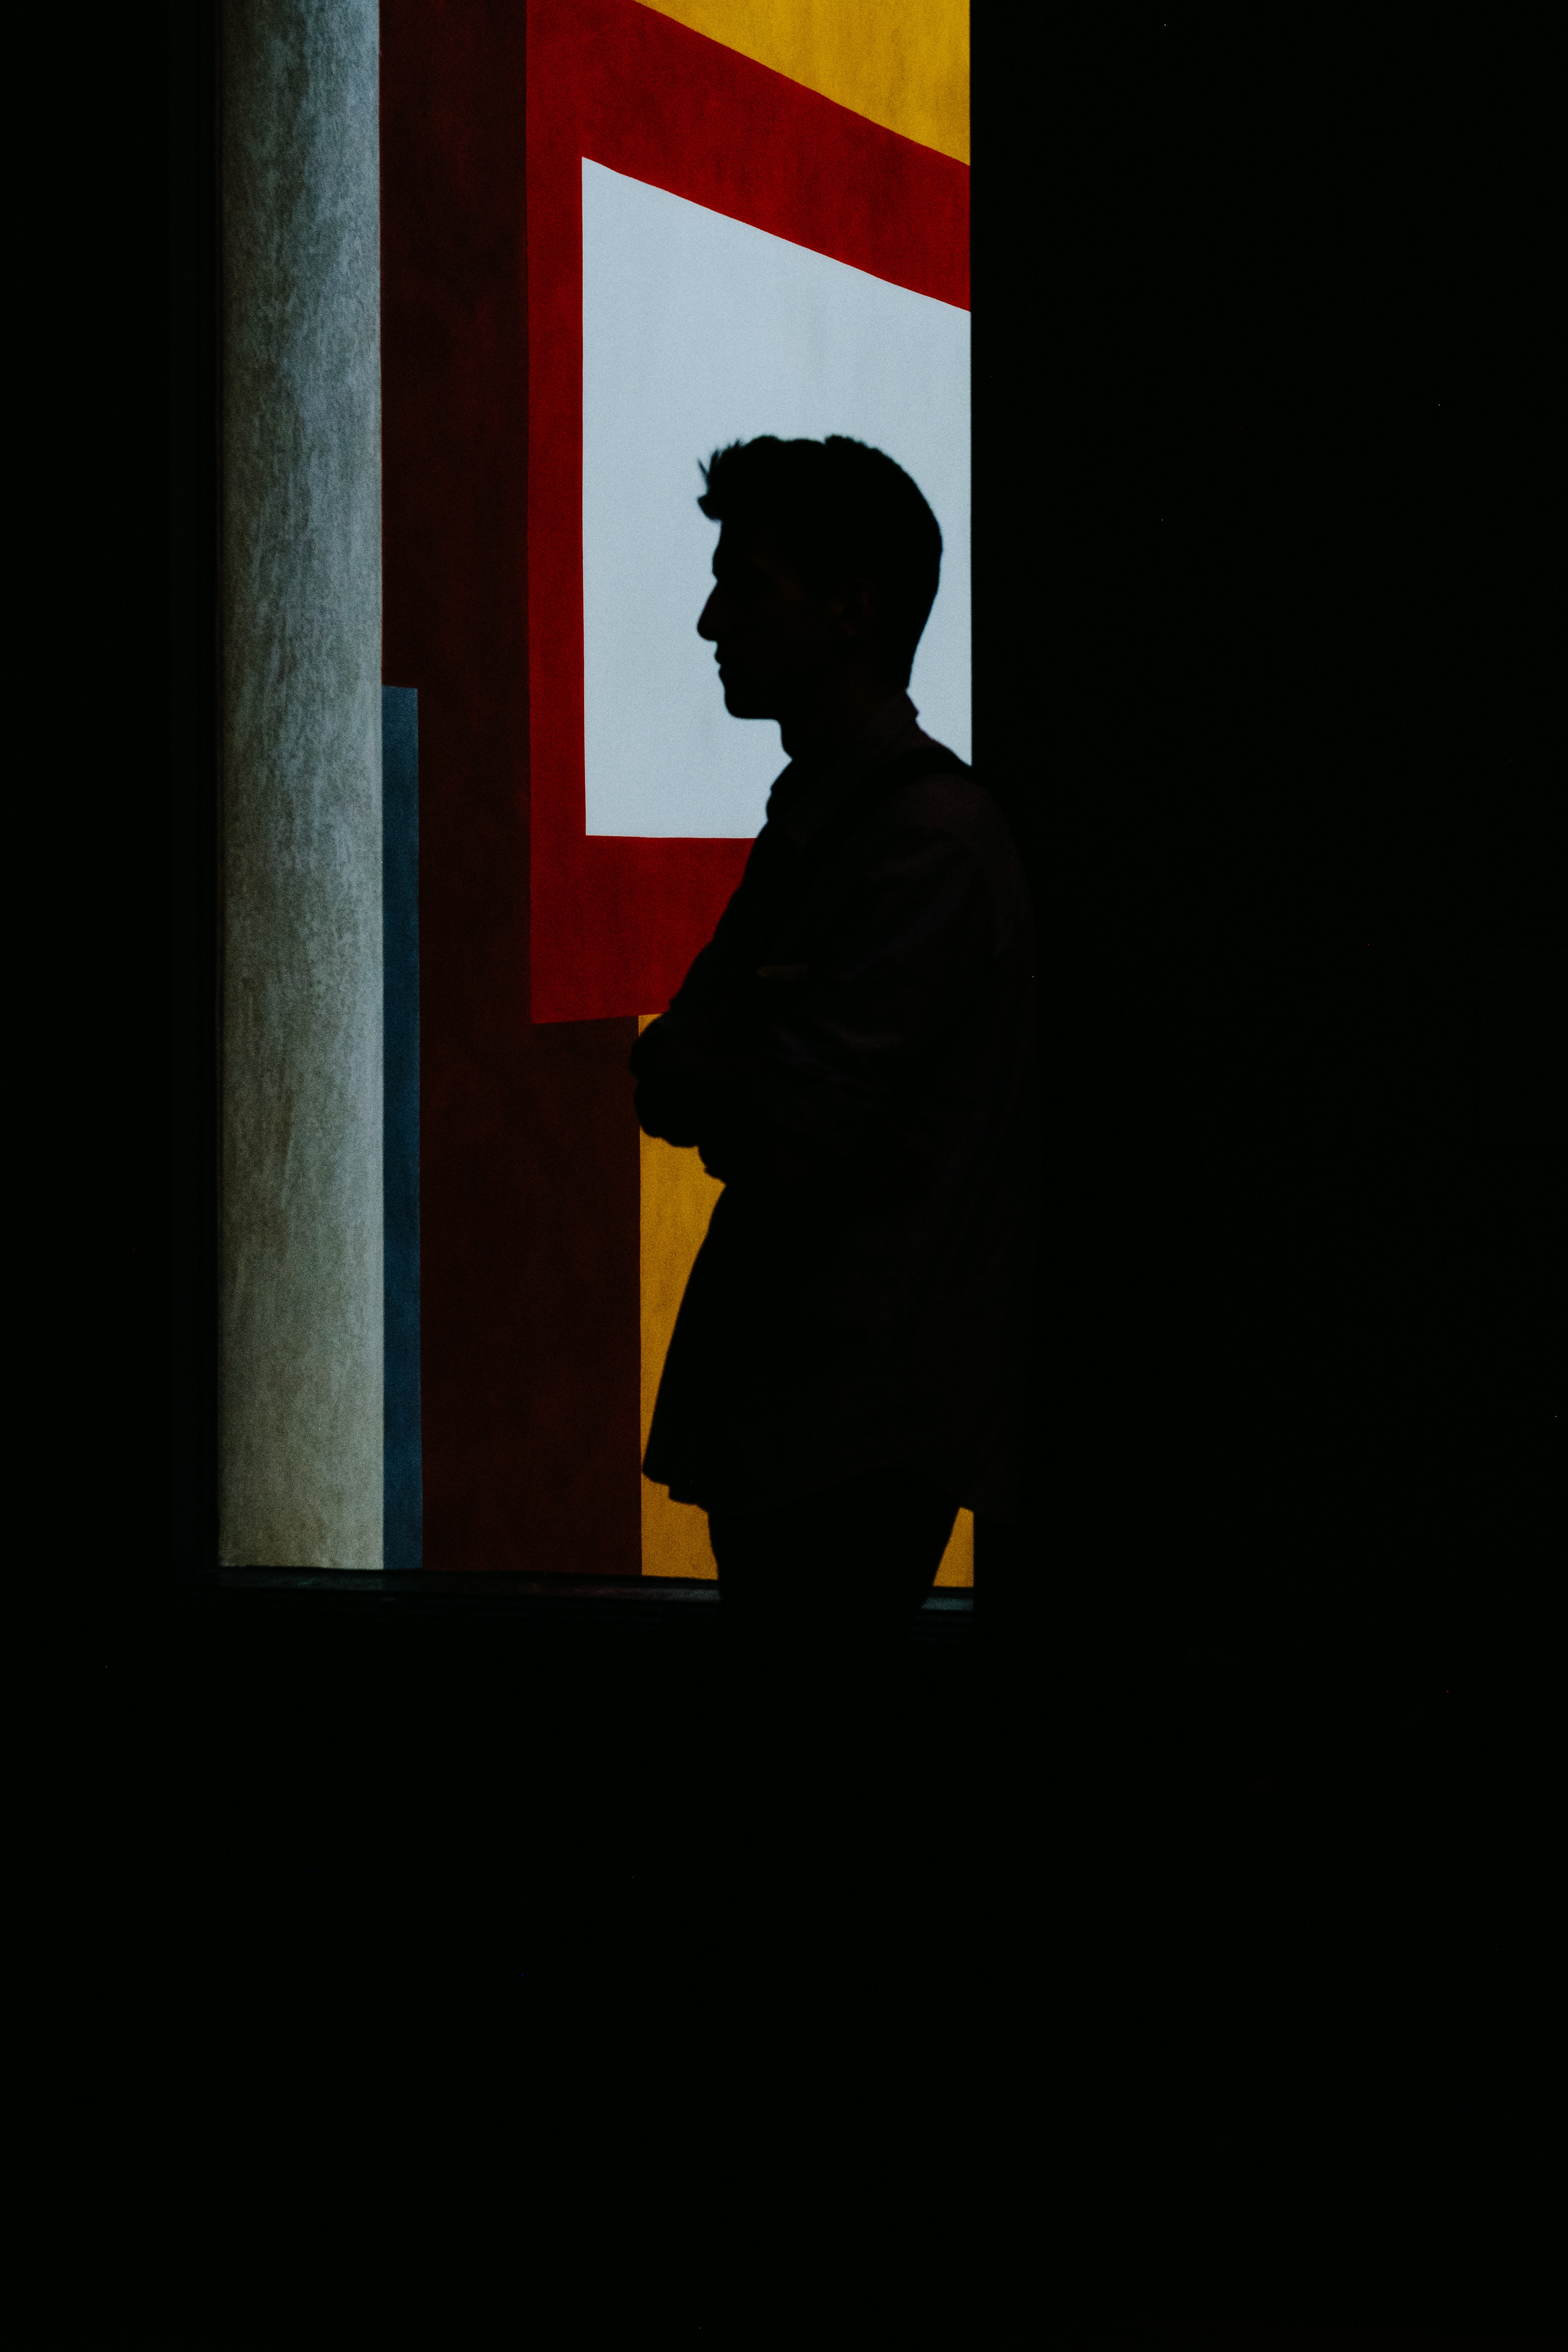 silhouette ofe man leaning on window